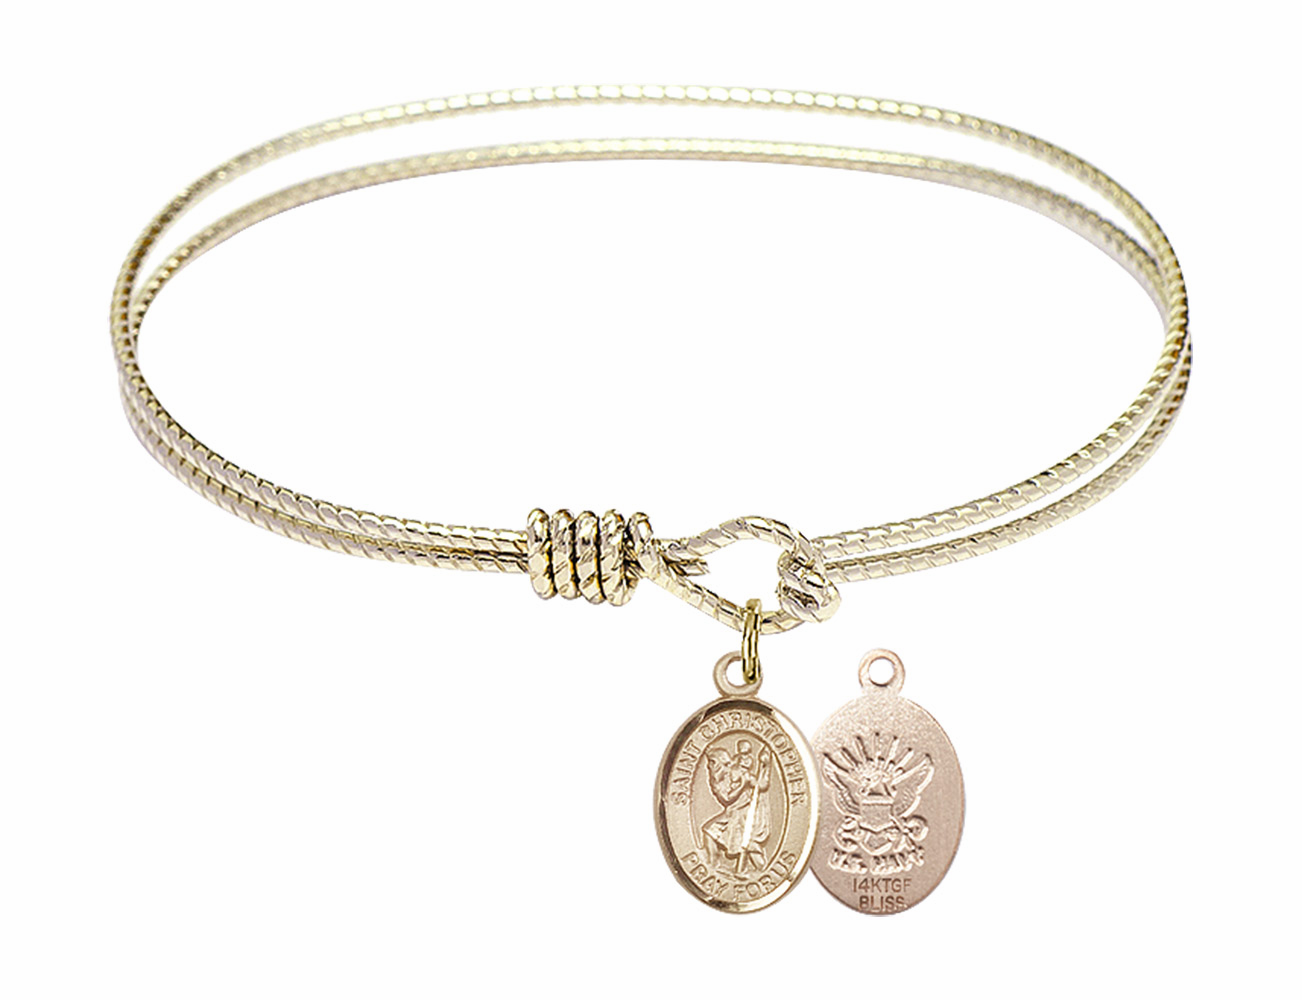 Twisted Gold-filled St Christopher Navy Bangle Charm Bracelet by Bliss